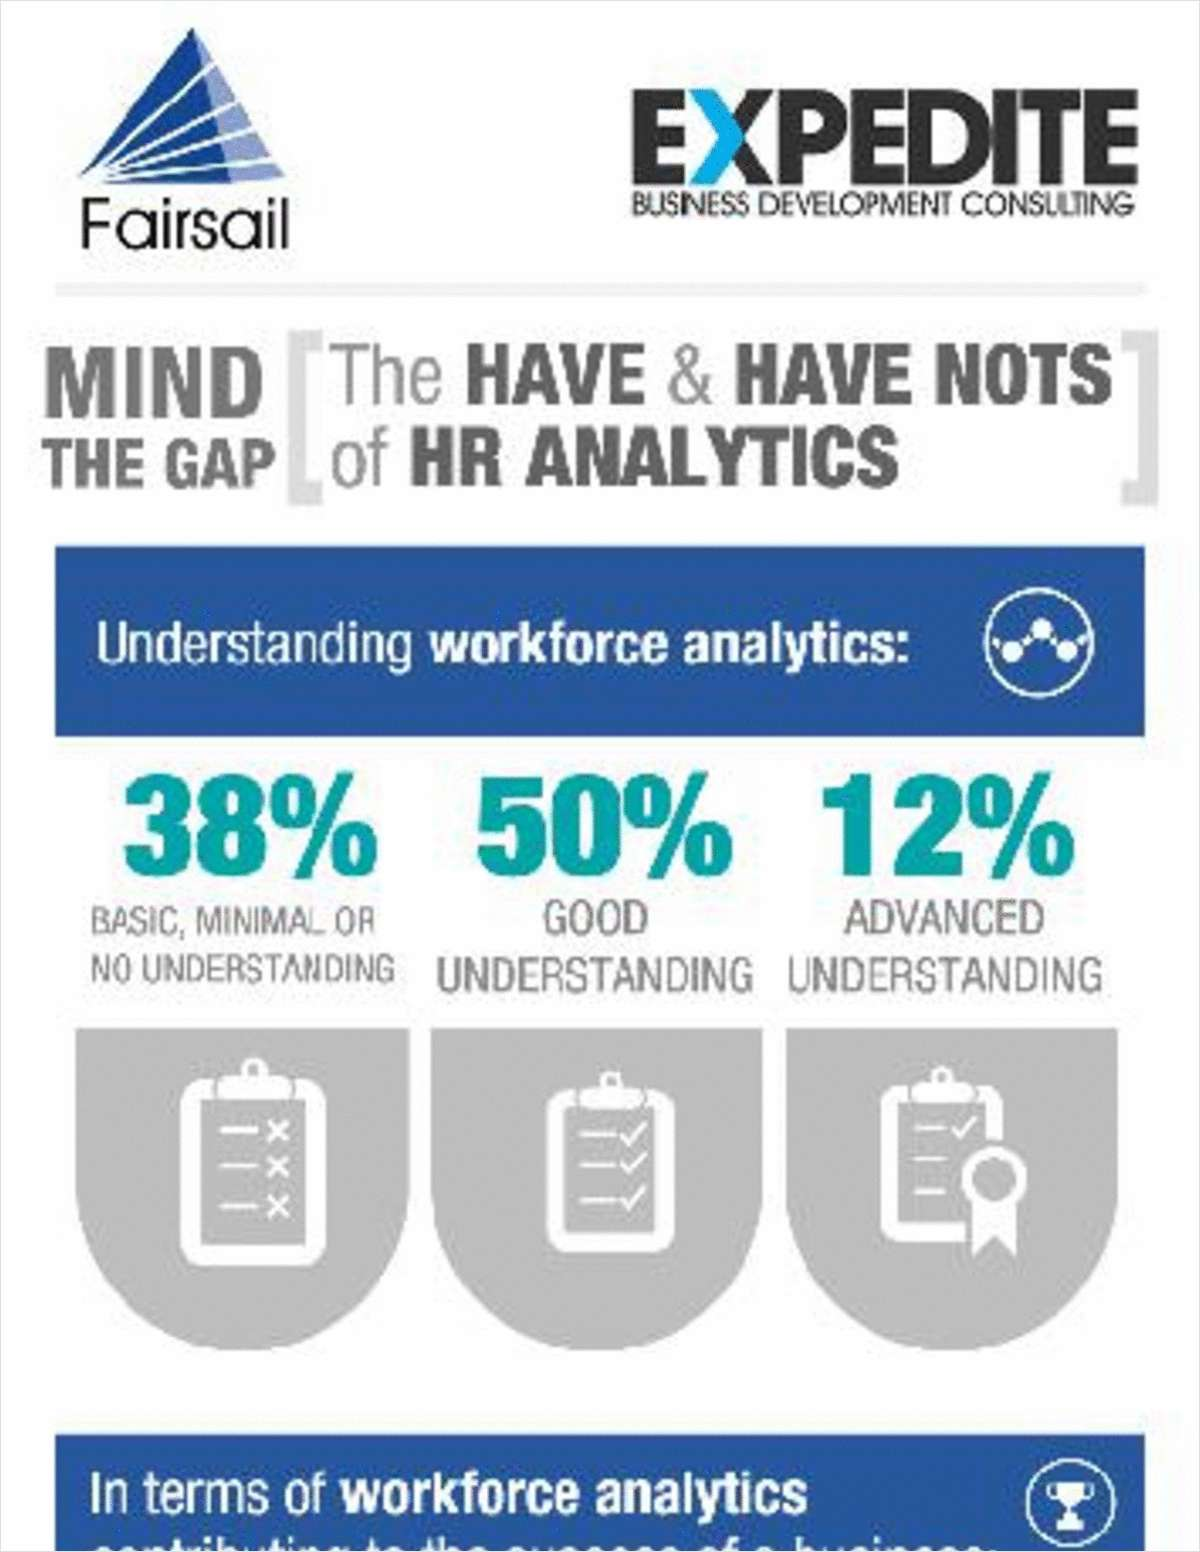 Mind the Gap: The have and have nots of HR analytics